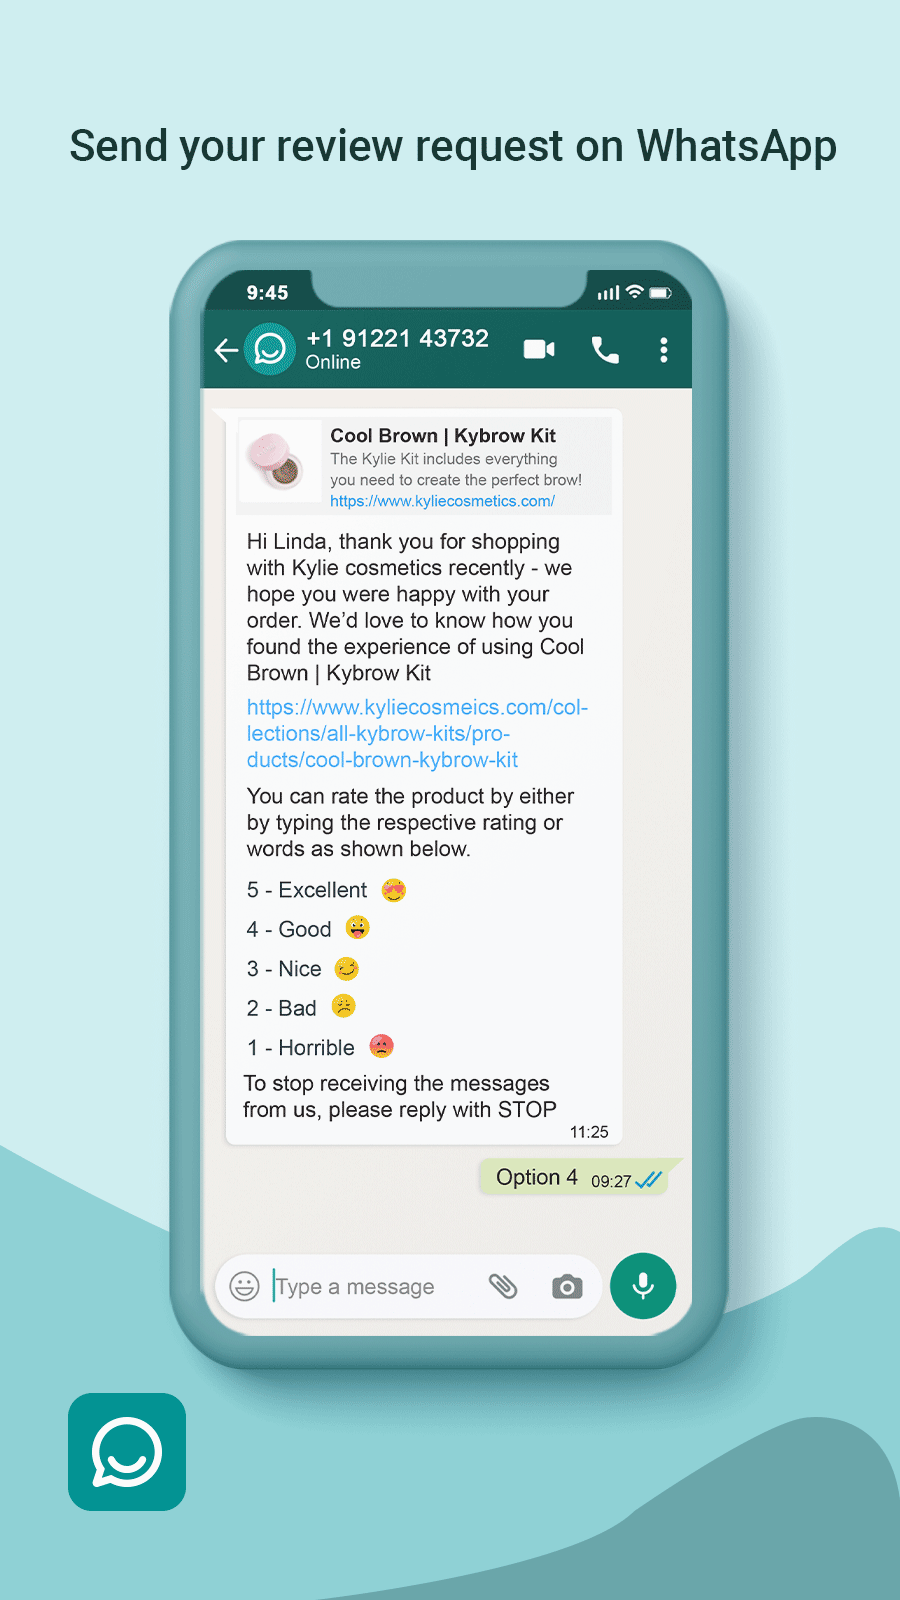 Whatsapp Review Request